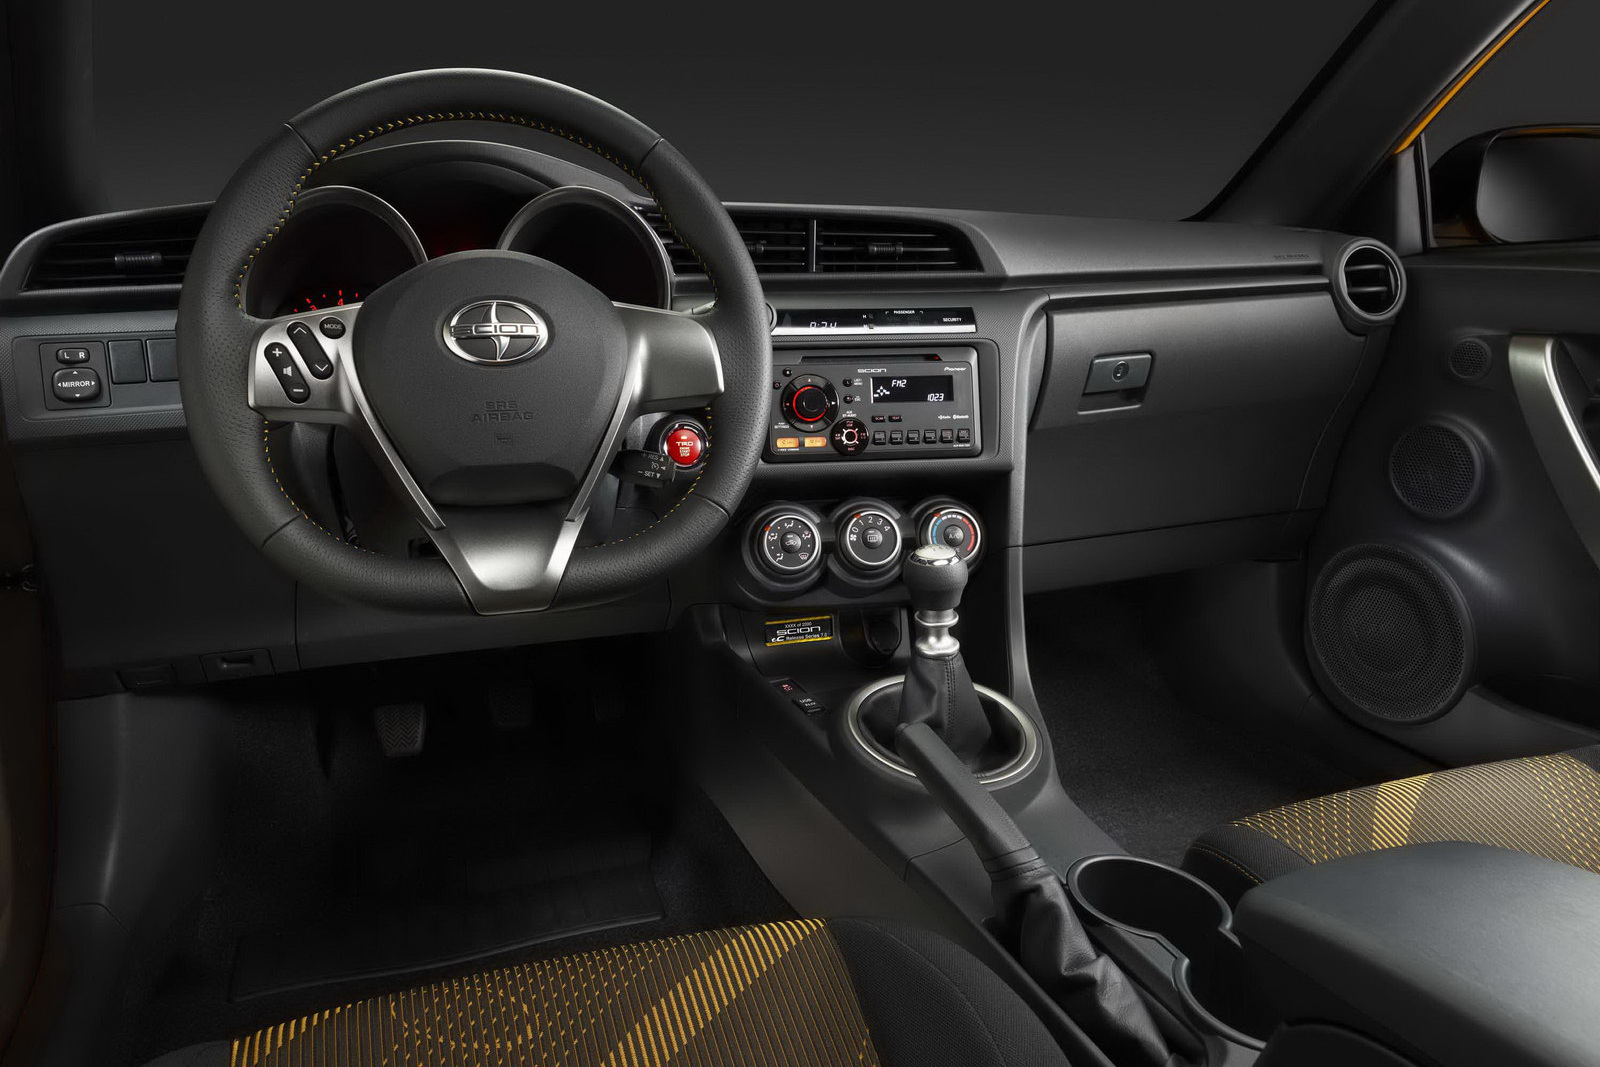 2012 Scion tC Version 1 Scion Car with Sophisticated Upgradation Tools